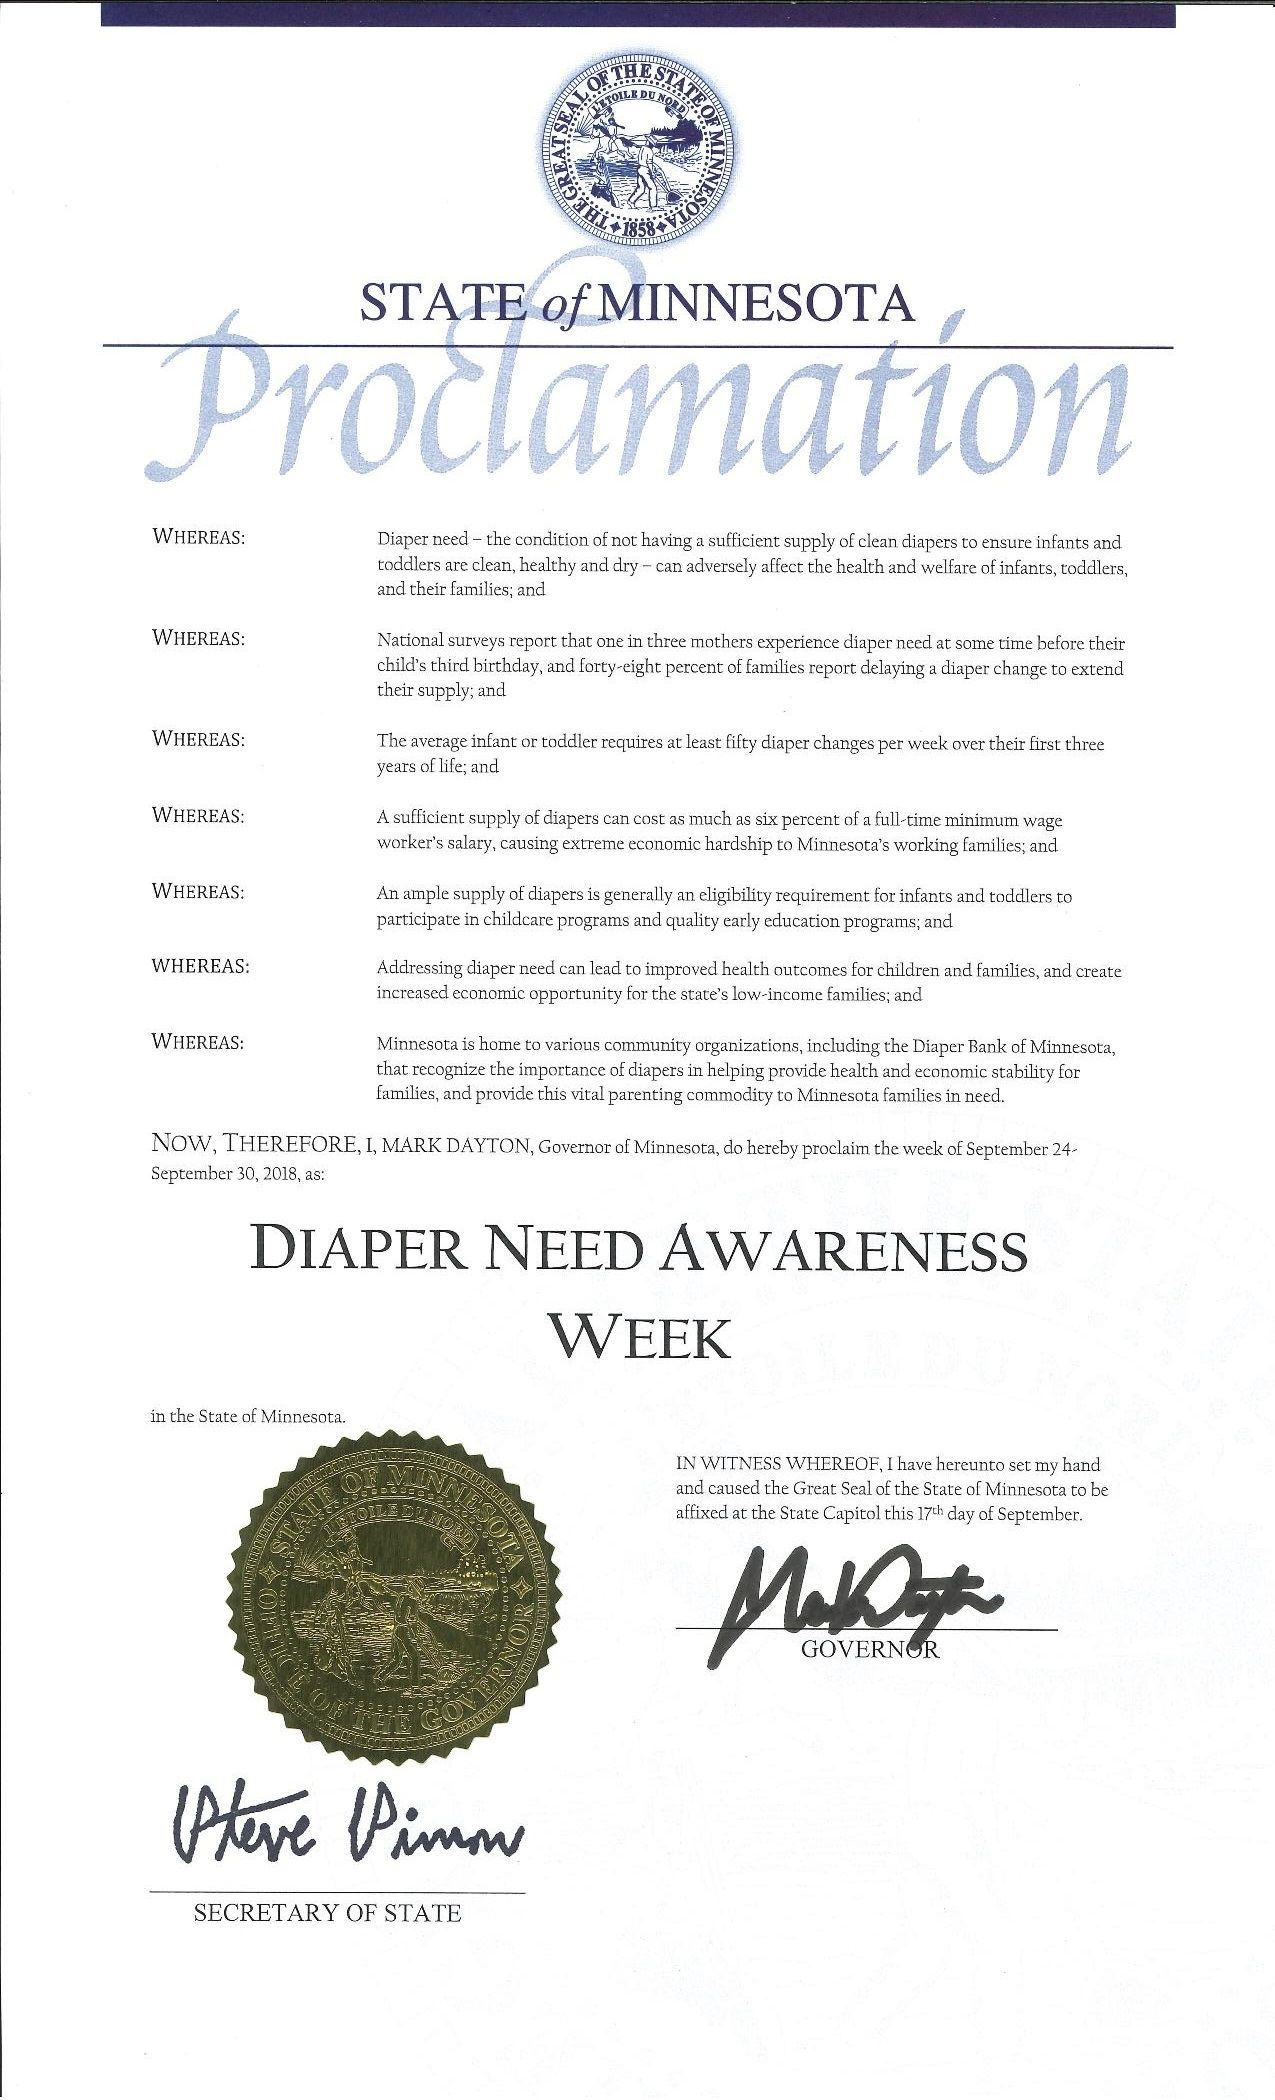 Pin By National Diaper Bank Network On 2018 Diaper Need Awareness Week Proclamations With Images Prince Day 7 Prince Prince